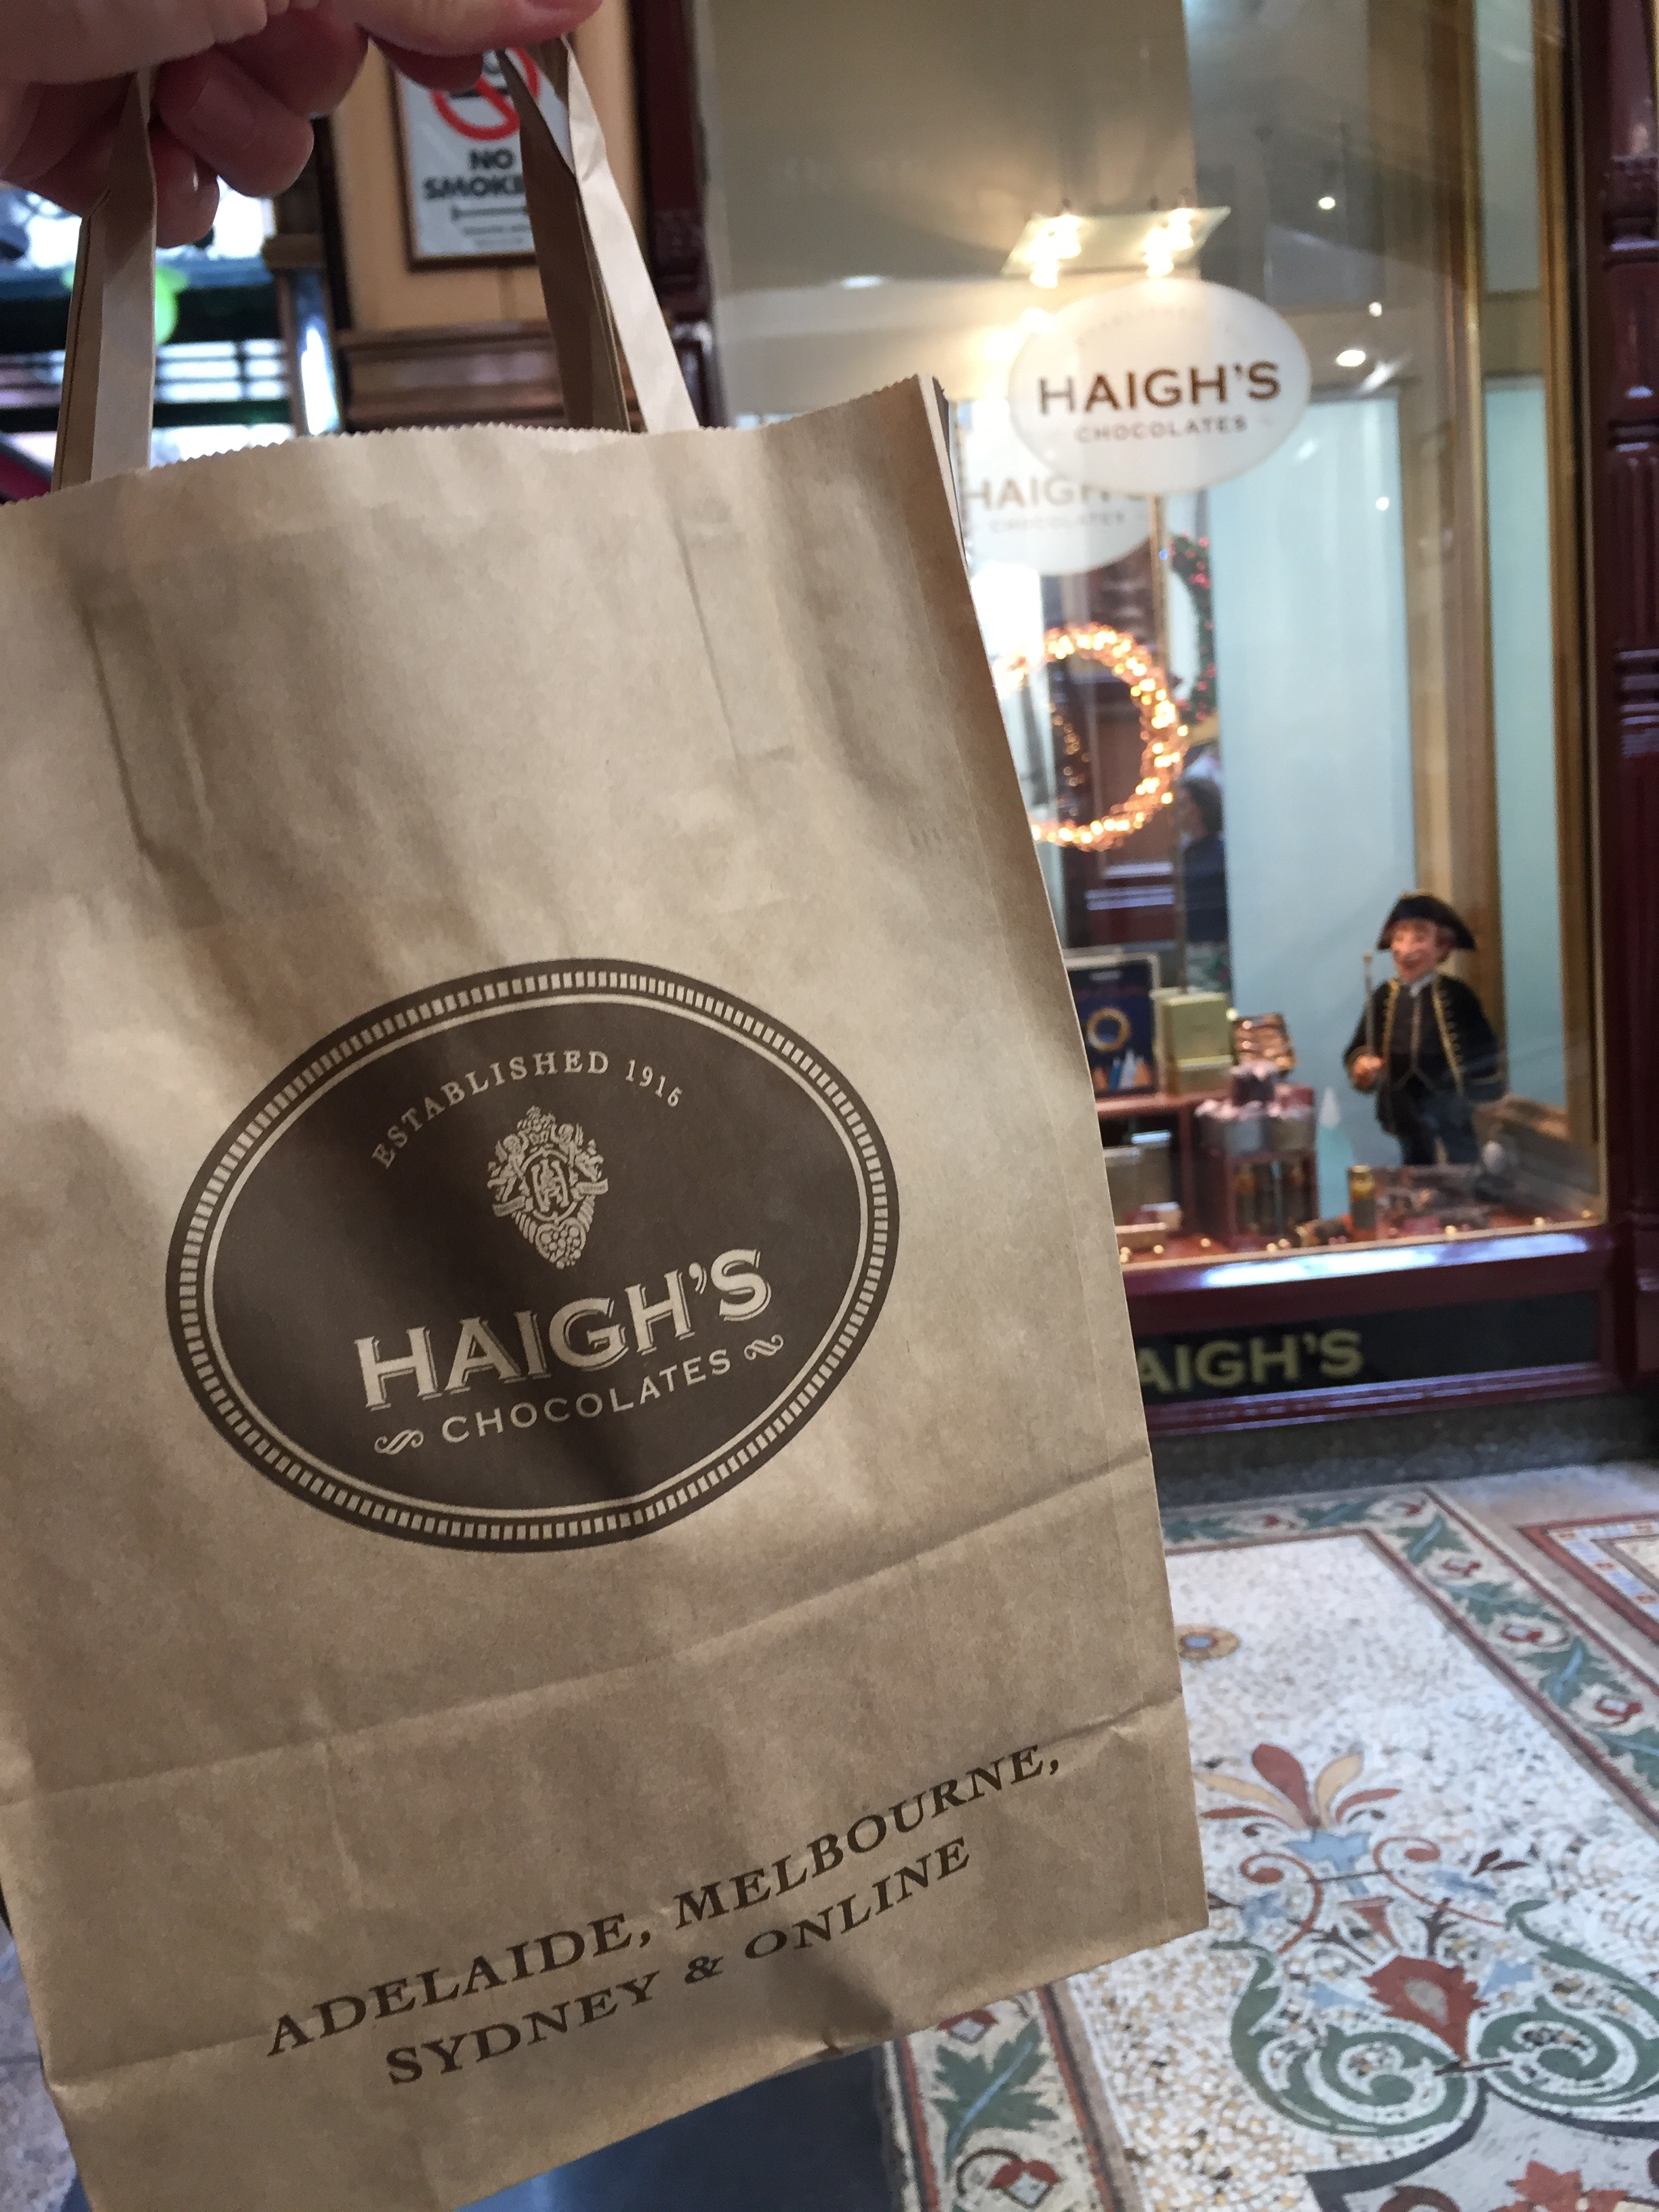 Brown kraft store bag outside the Haigh's Chocolates store in Melbourne